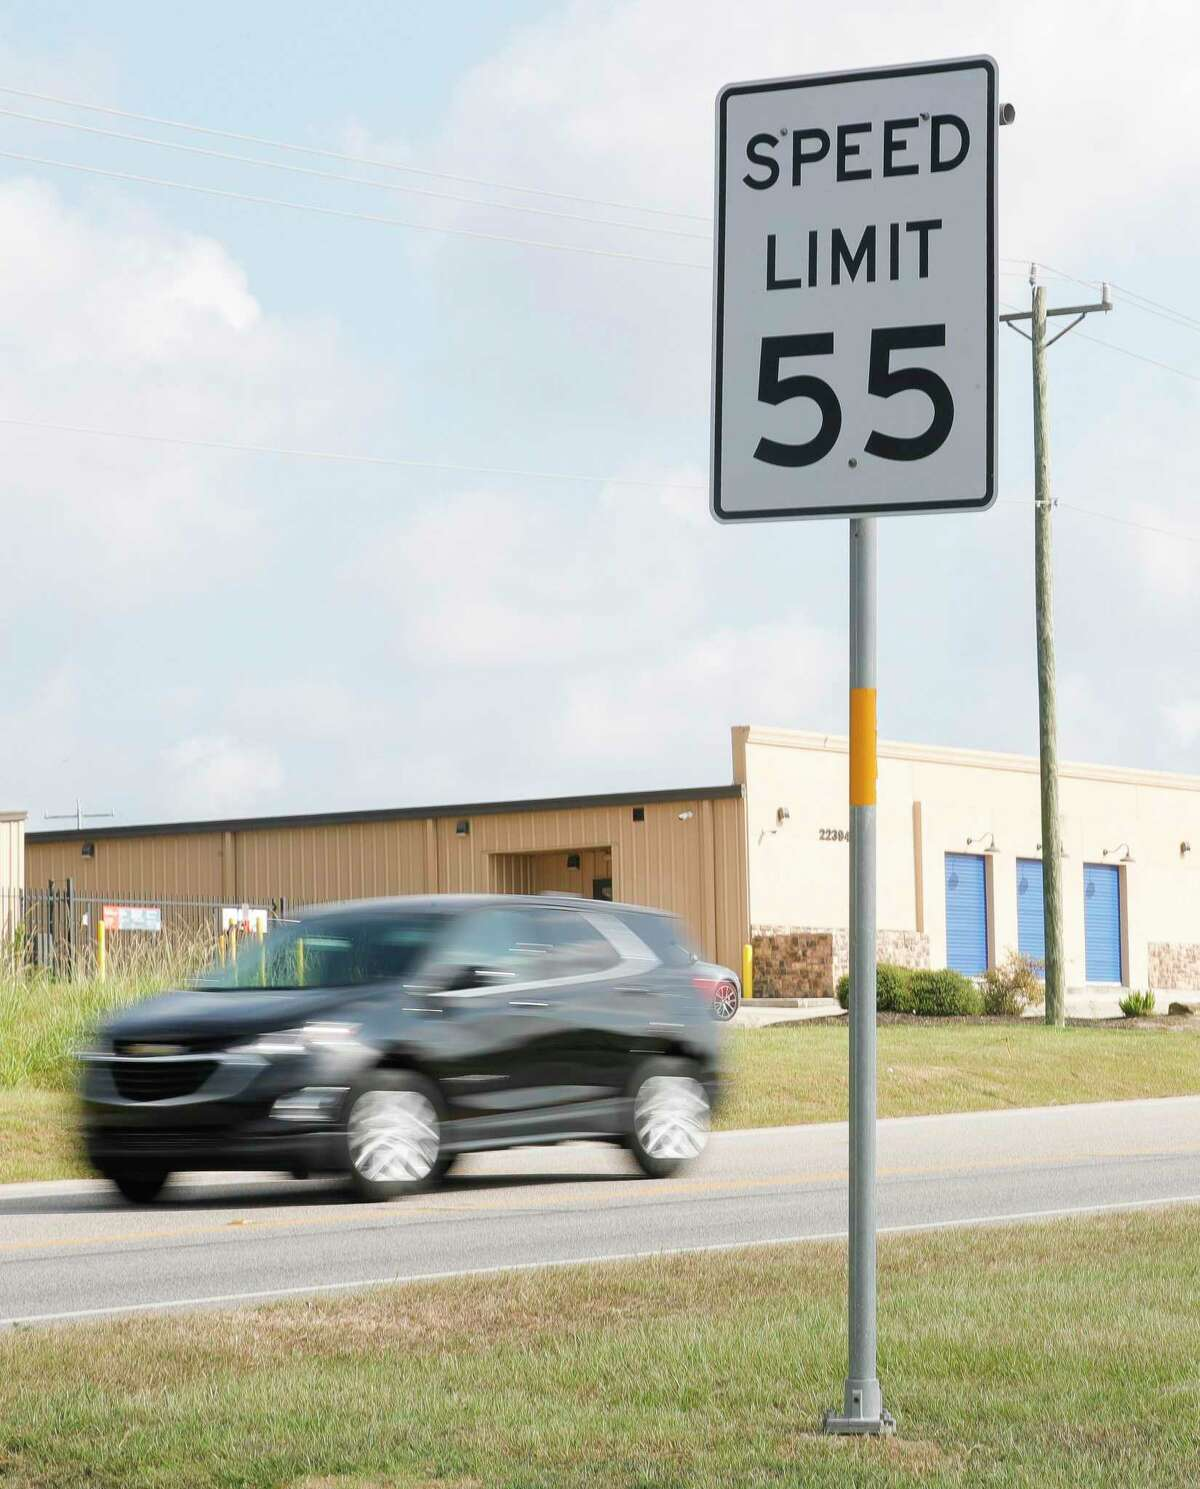 The city of Montgomery is hoping to get TxDOT to lower the speed limit from 55 miles per hour to 45 along FM 1097.